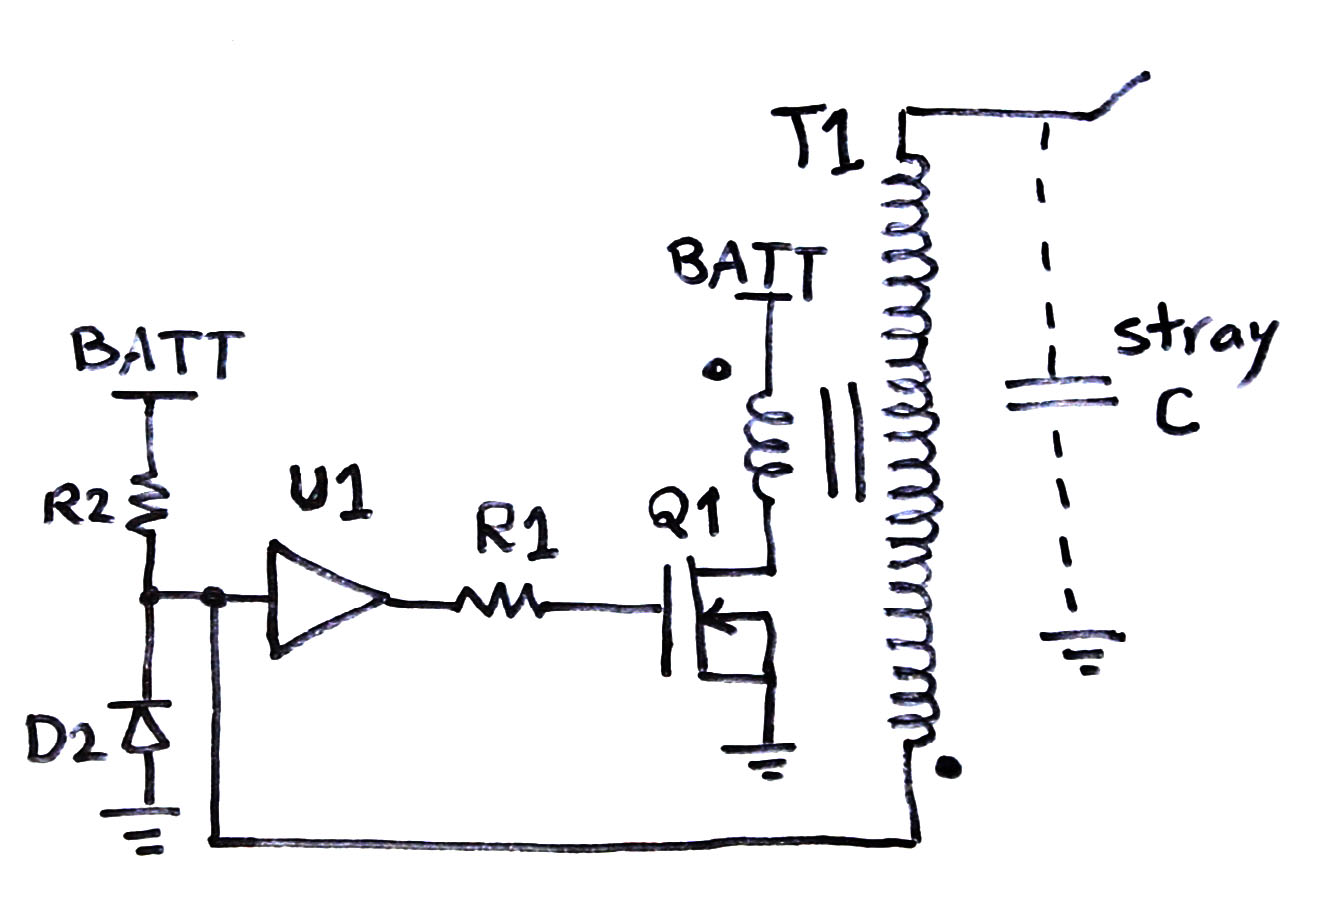 hight resolution of slayer exciter with mosfet and gate driver